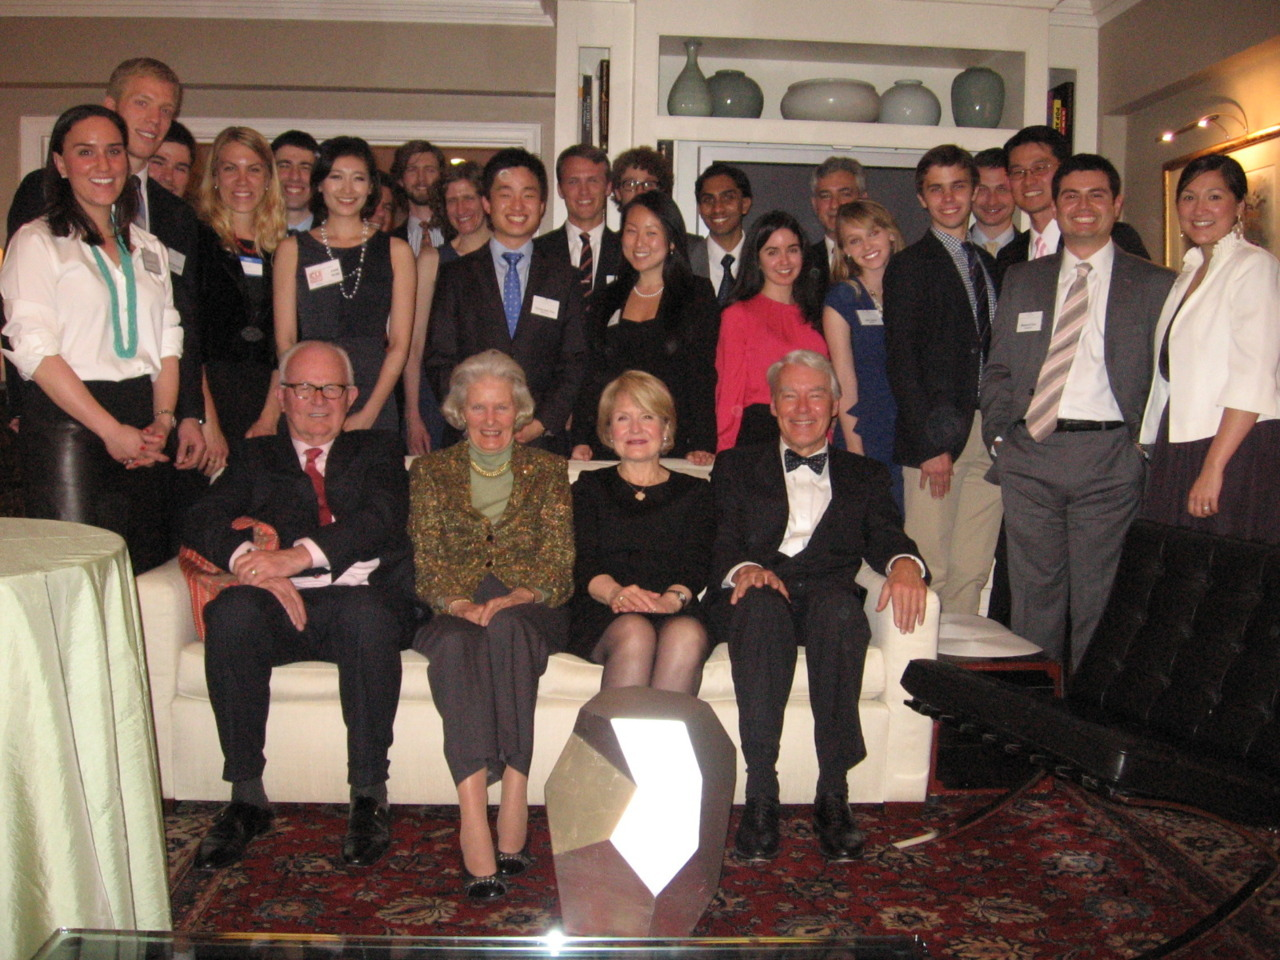 The Bosworths hosted the Fletcher Diplomacy Club last night for a dinner party and a discussion of diplomatic etiquette and protocol. It was an amazing event!